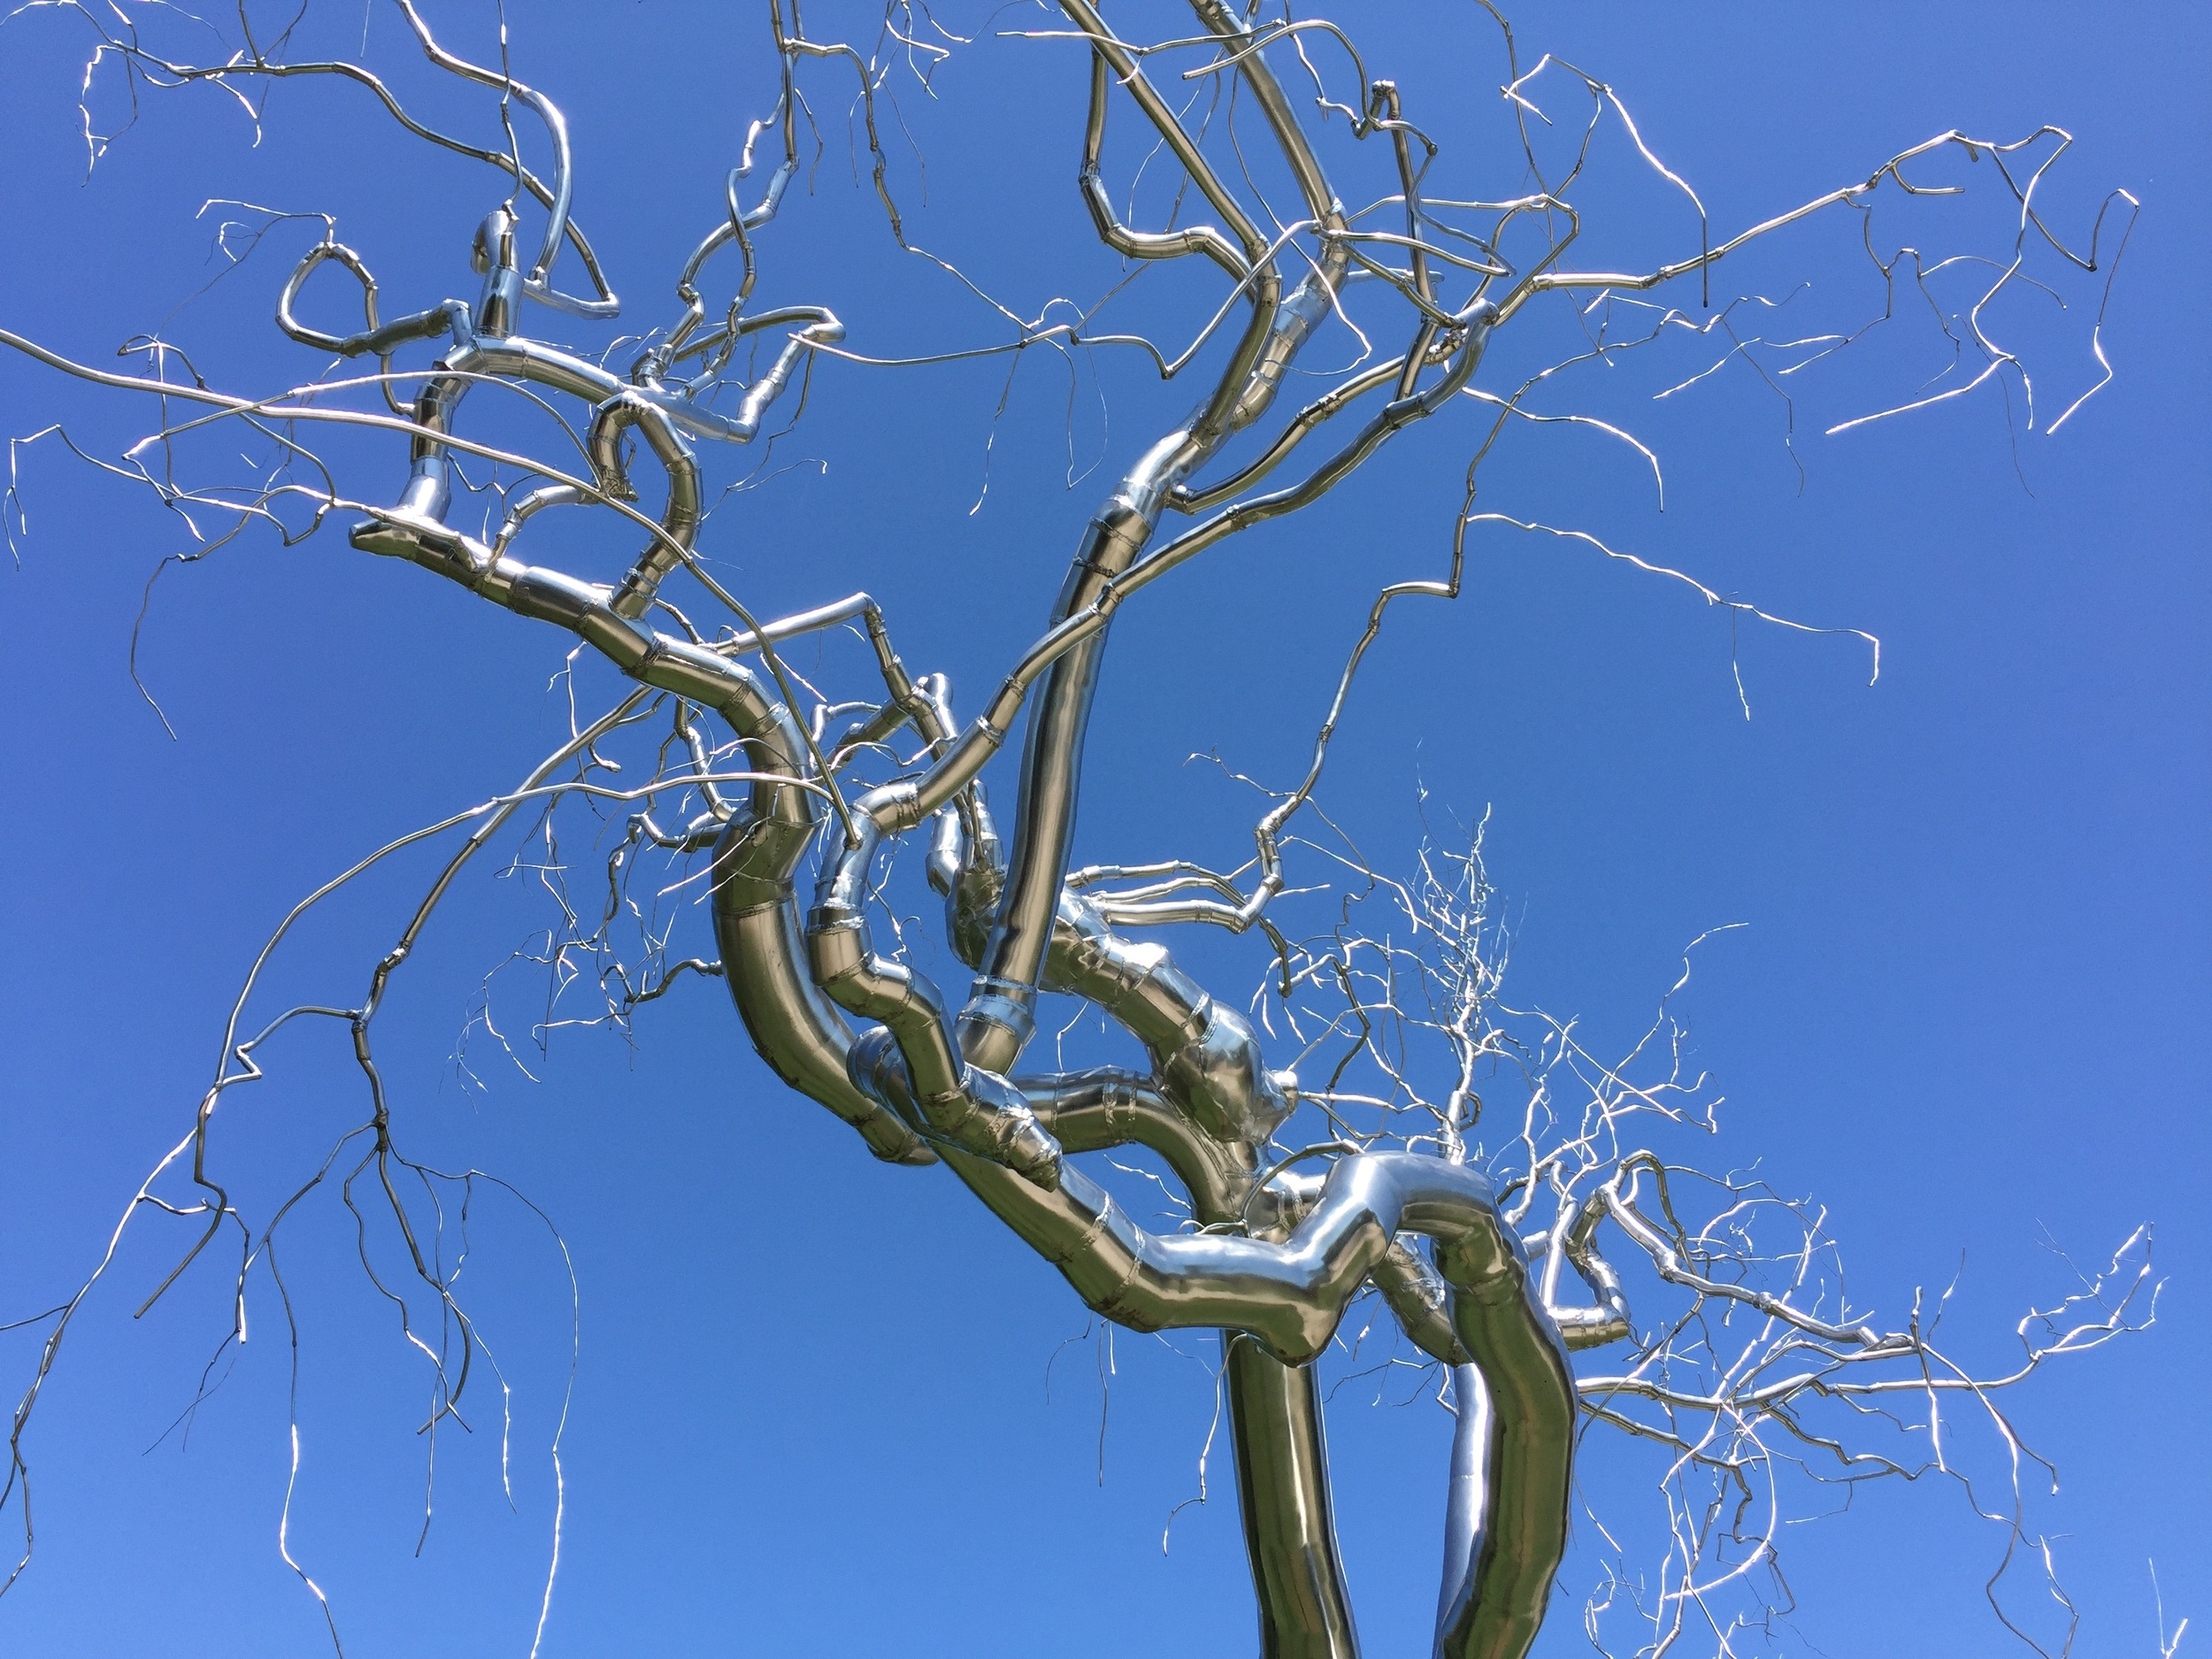 """Roxy Paine's """"Graft"""" at the National Gallery's sculpture garden."""